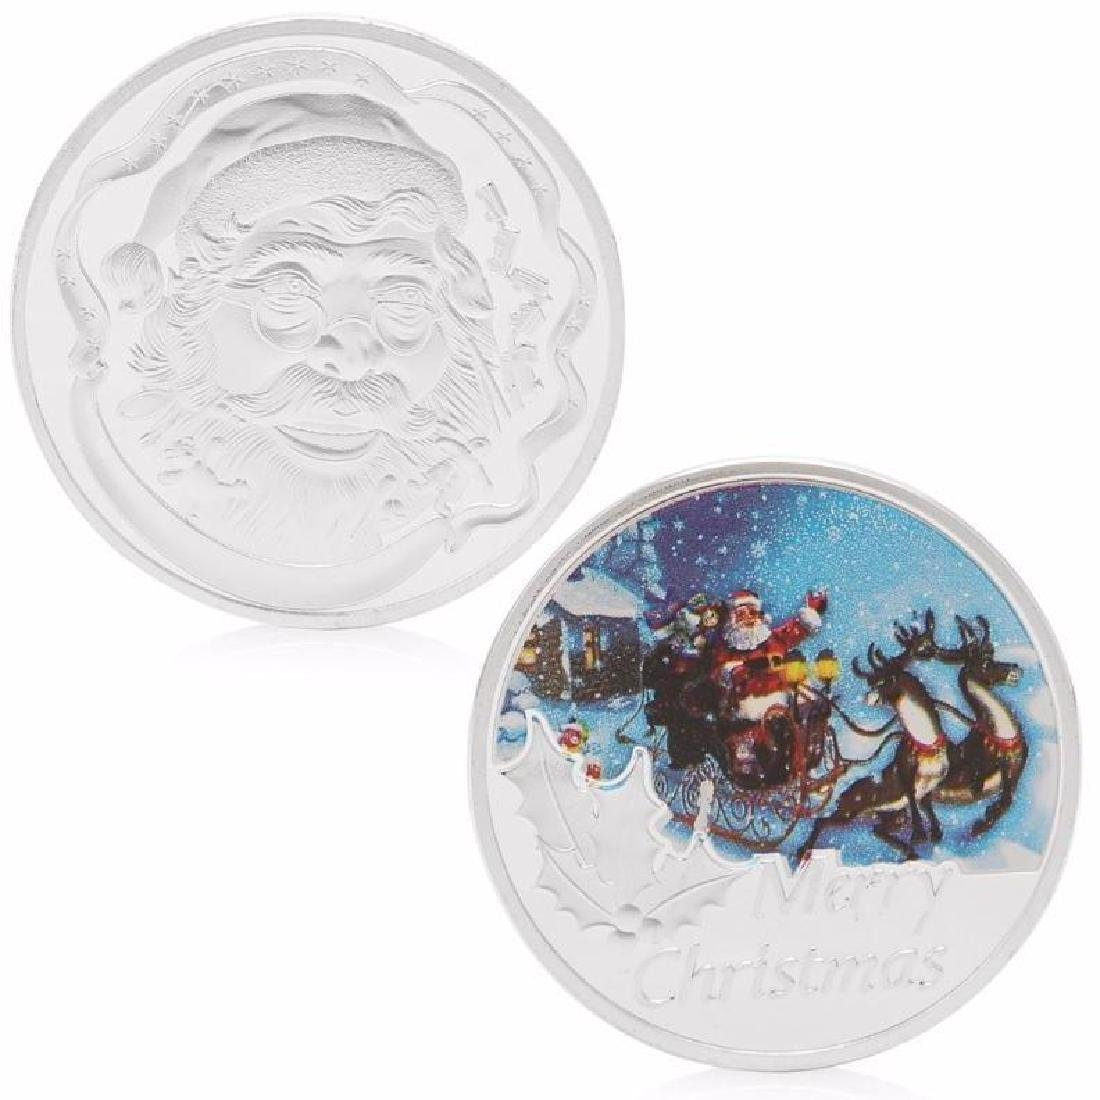 Santa Claus Christmas Colored Silver Clad Coin